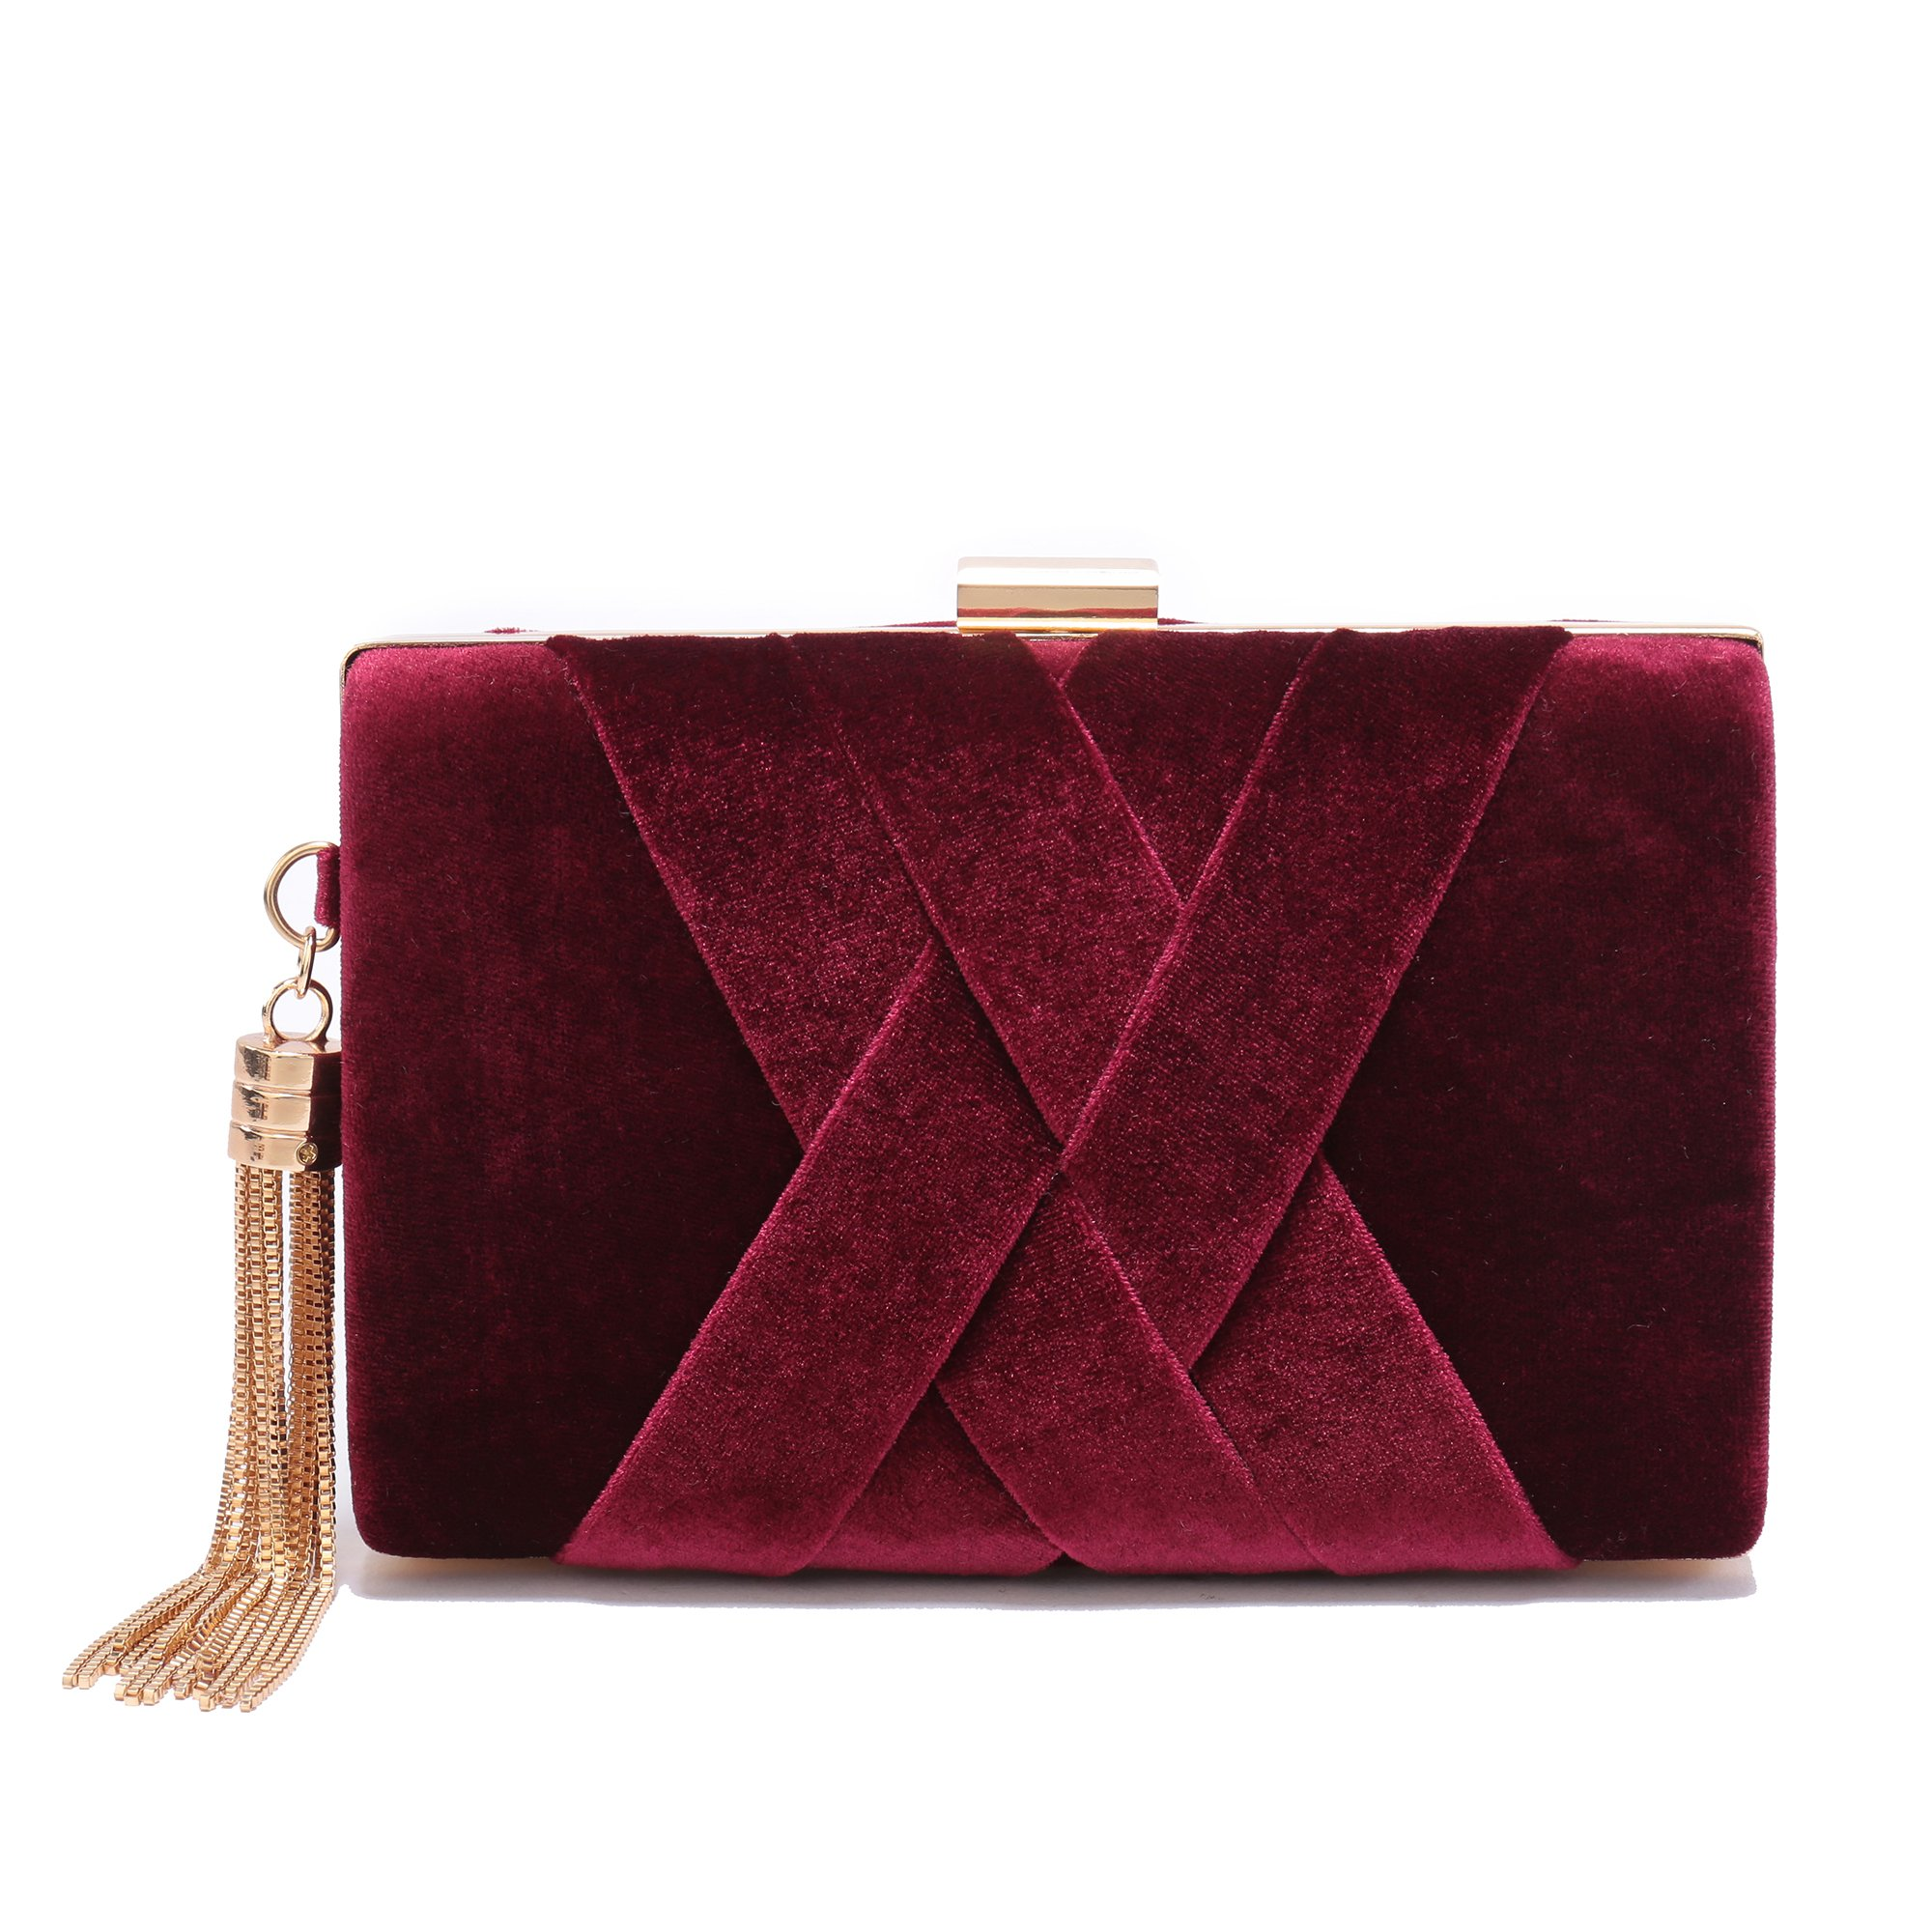 Women's Evening Clutch Bag Stain Fabric Bridal Purse For Wedding Prom Night Out Party Maroon